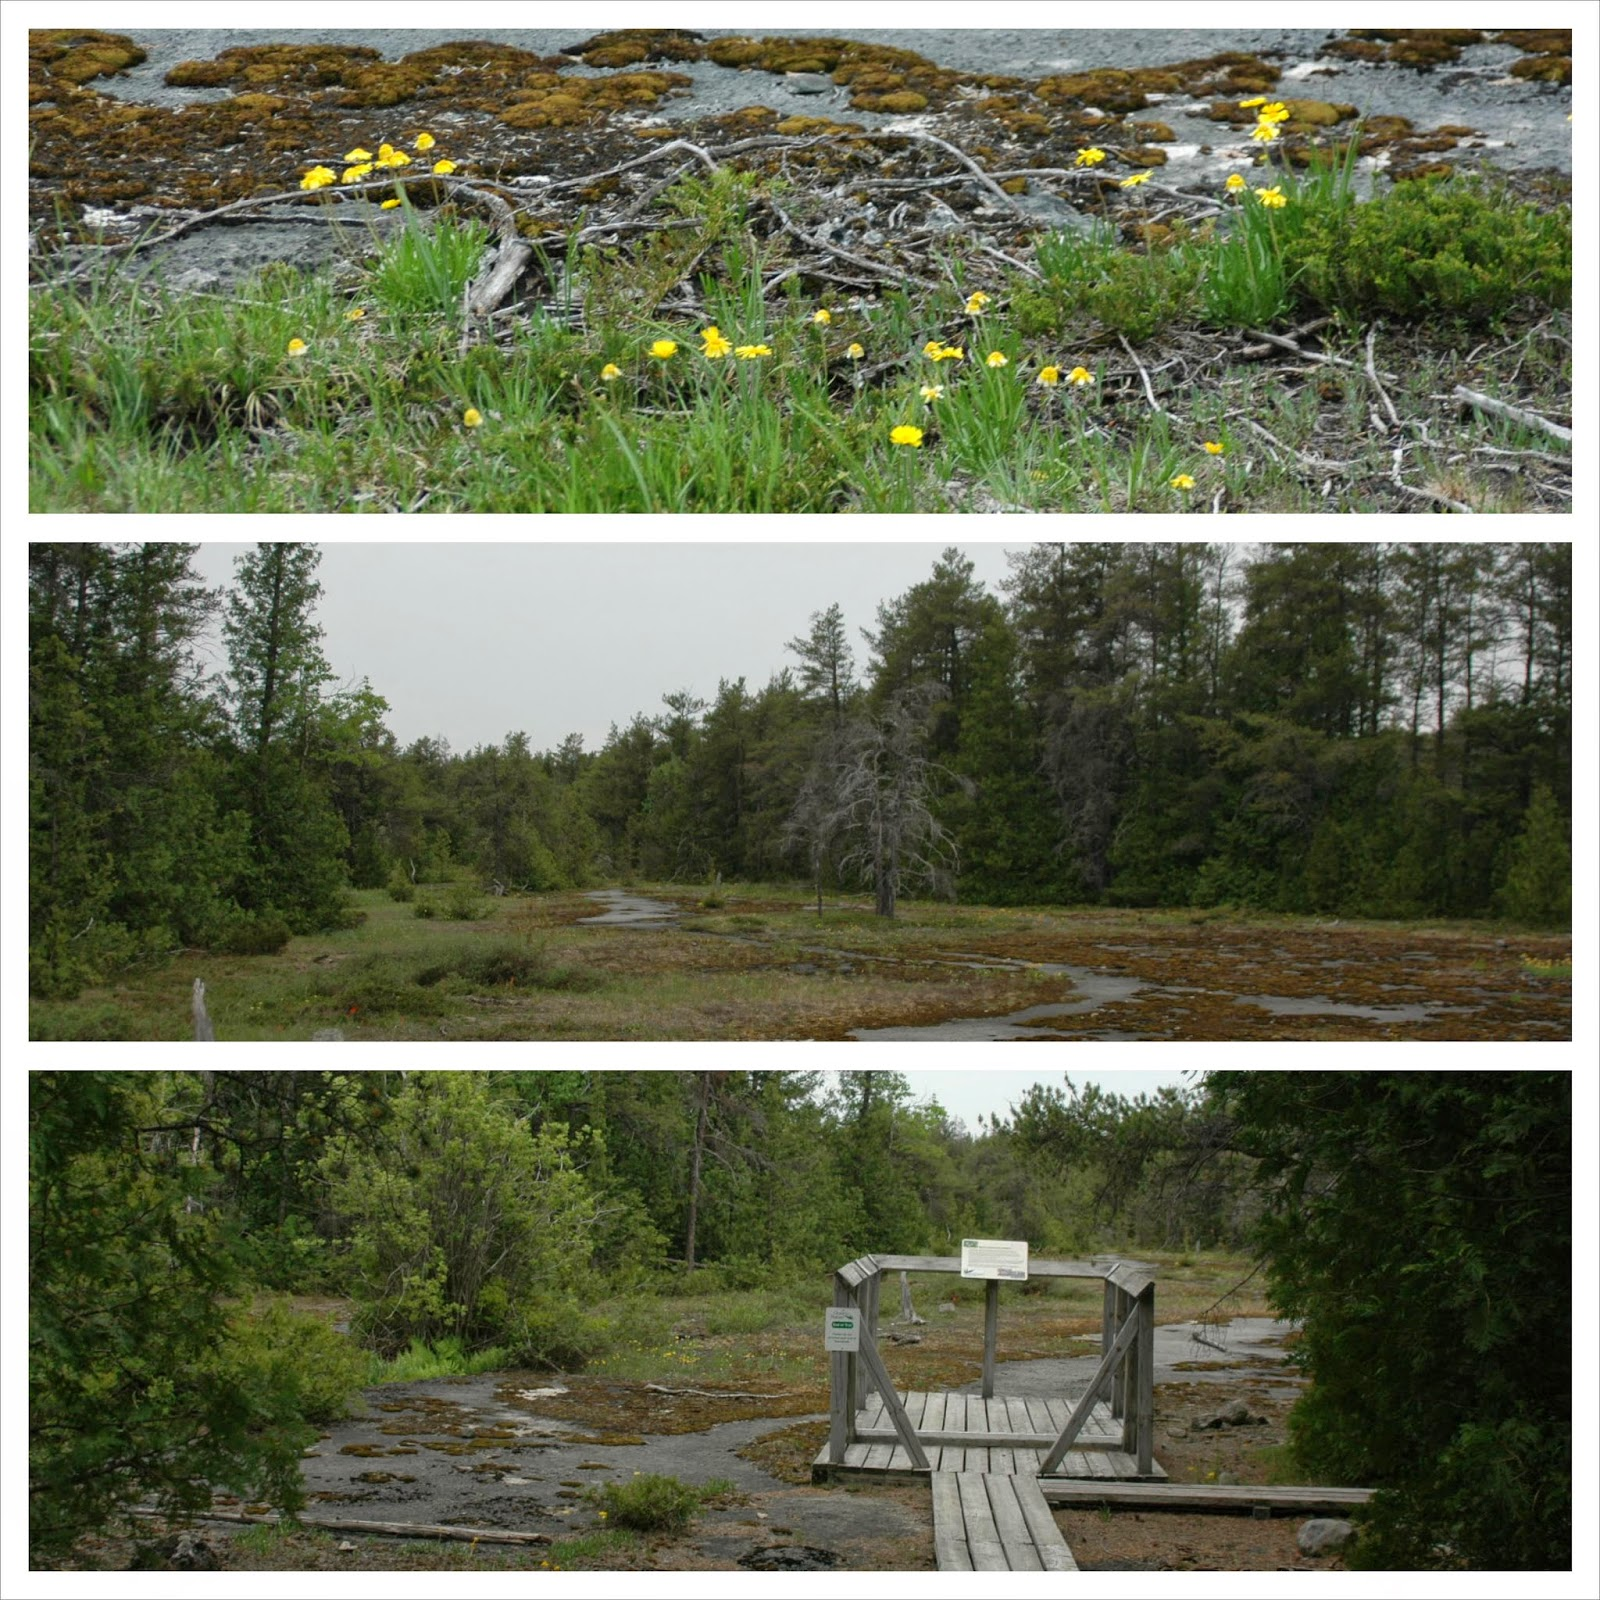 Habitat of Tetraneuris herbacea